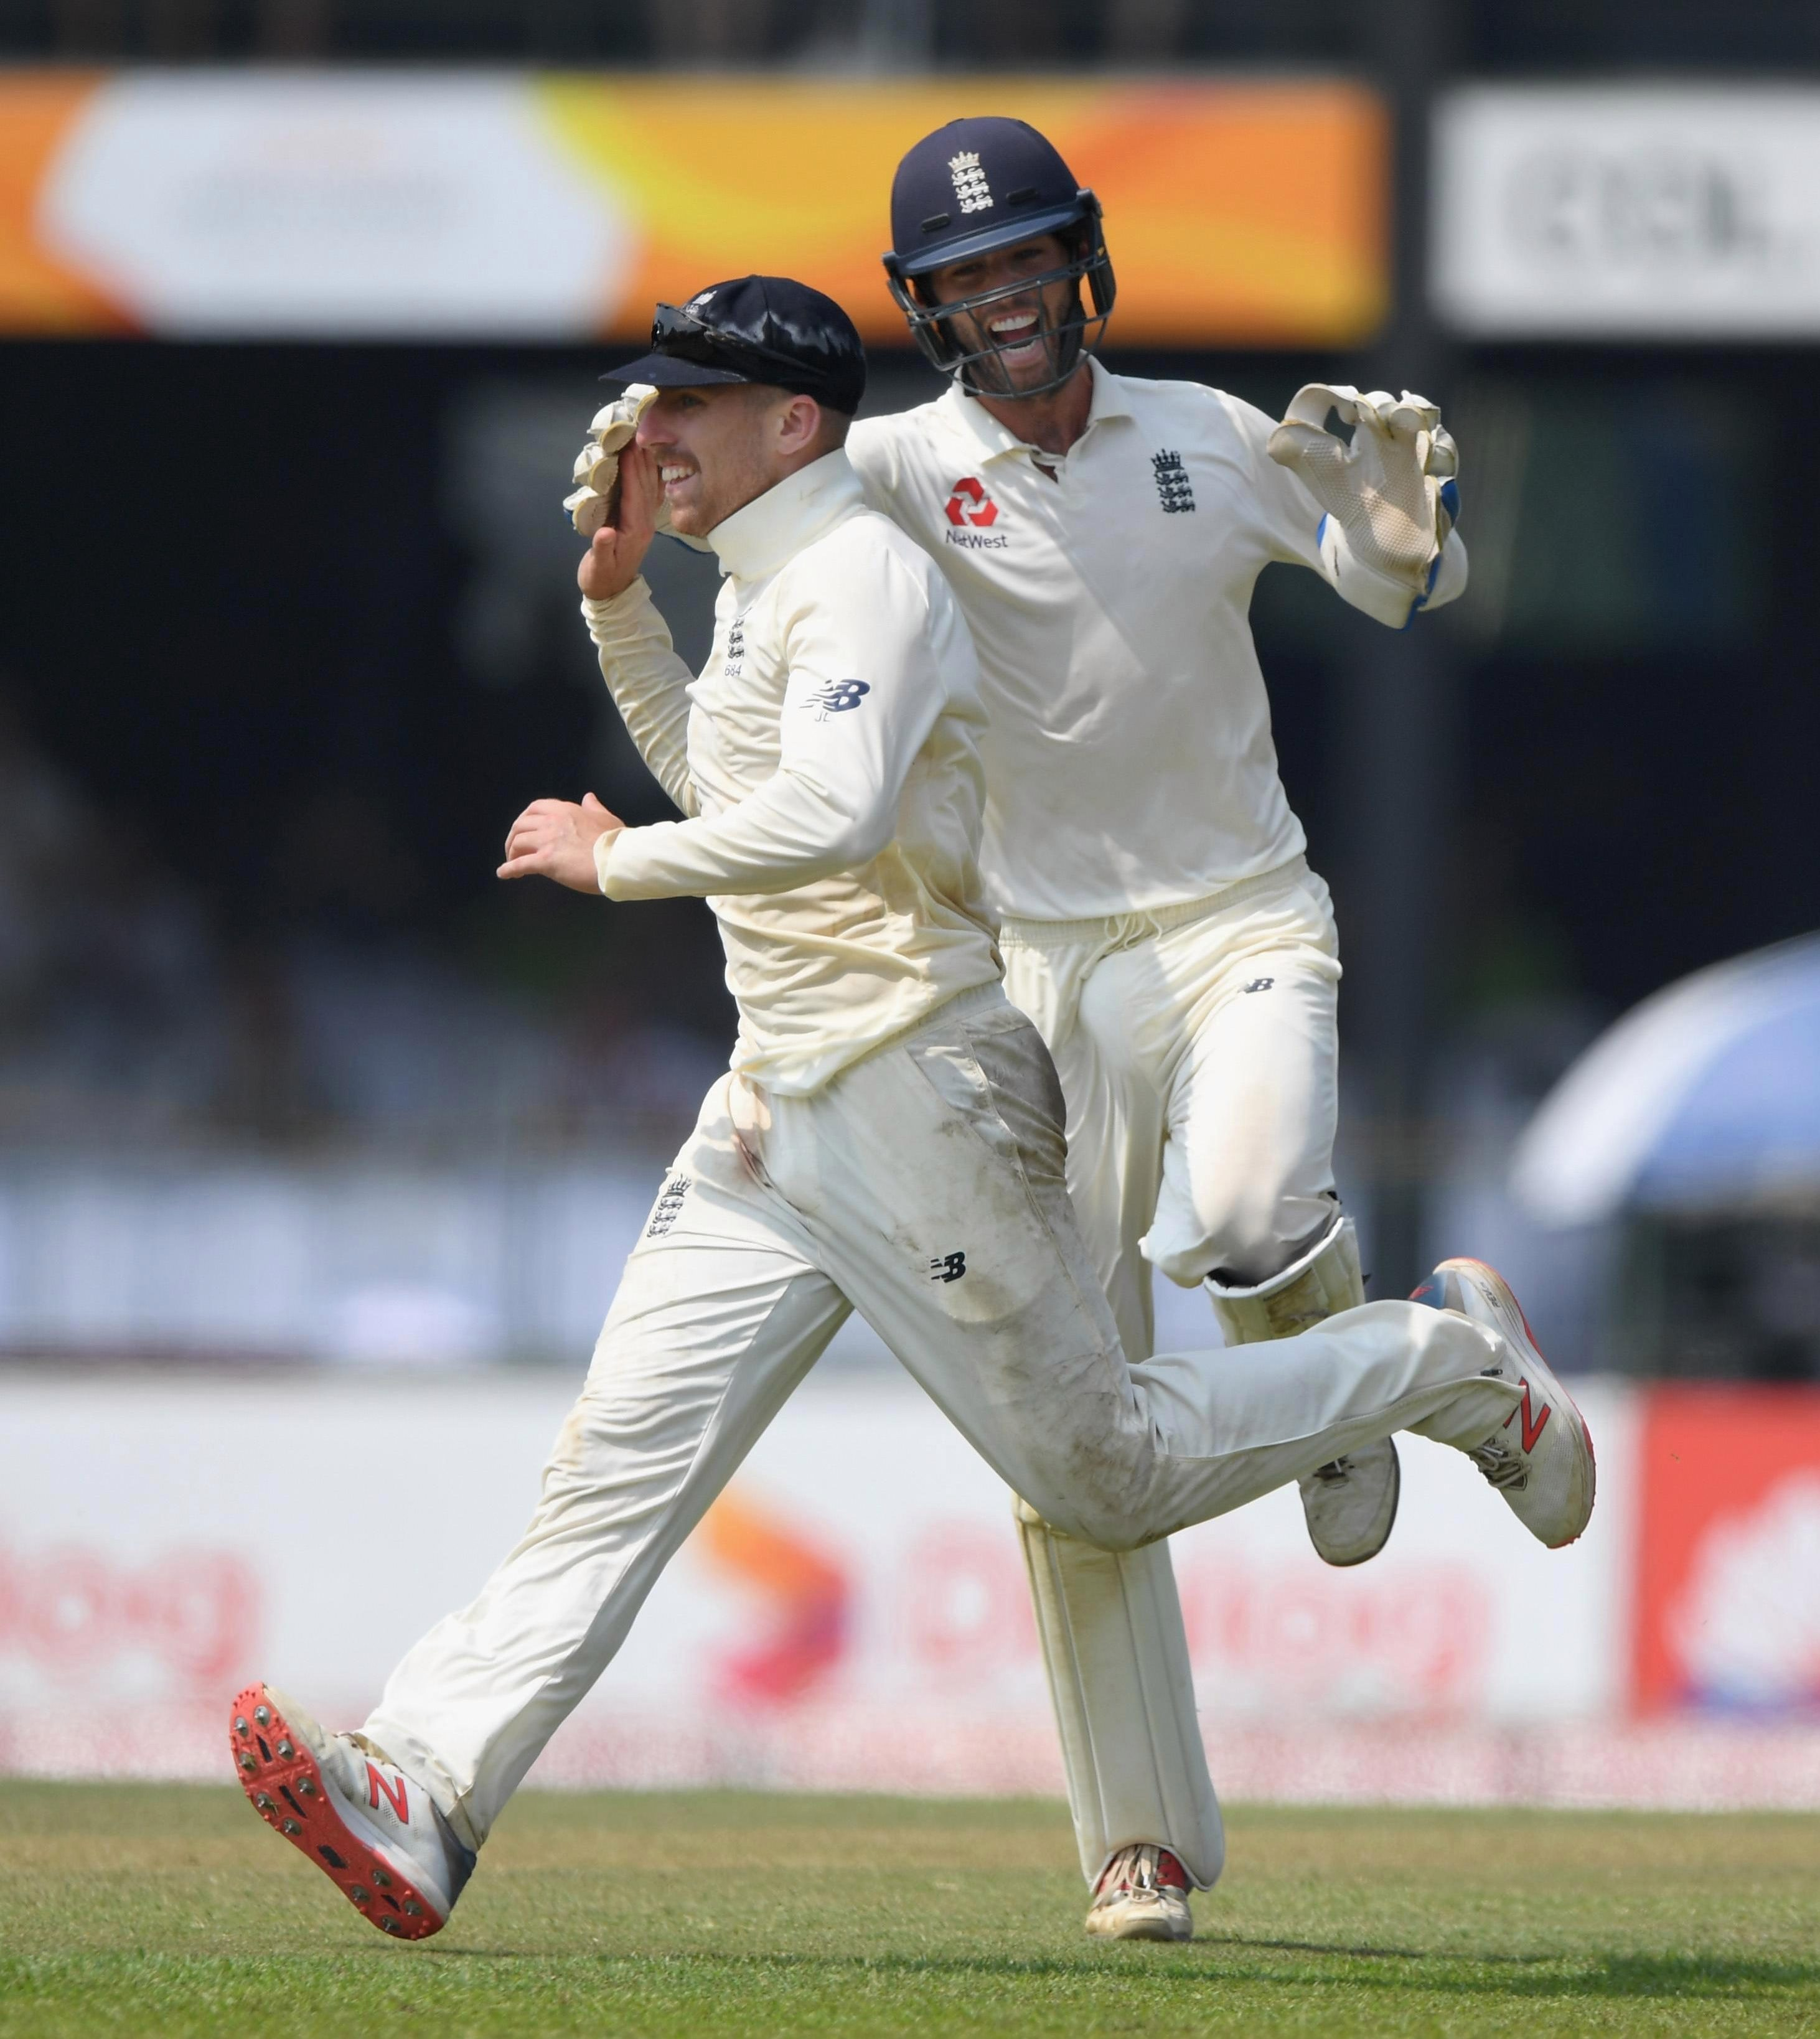 Jack Leach inspired England's victory on day four in Colombo